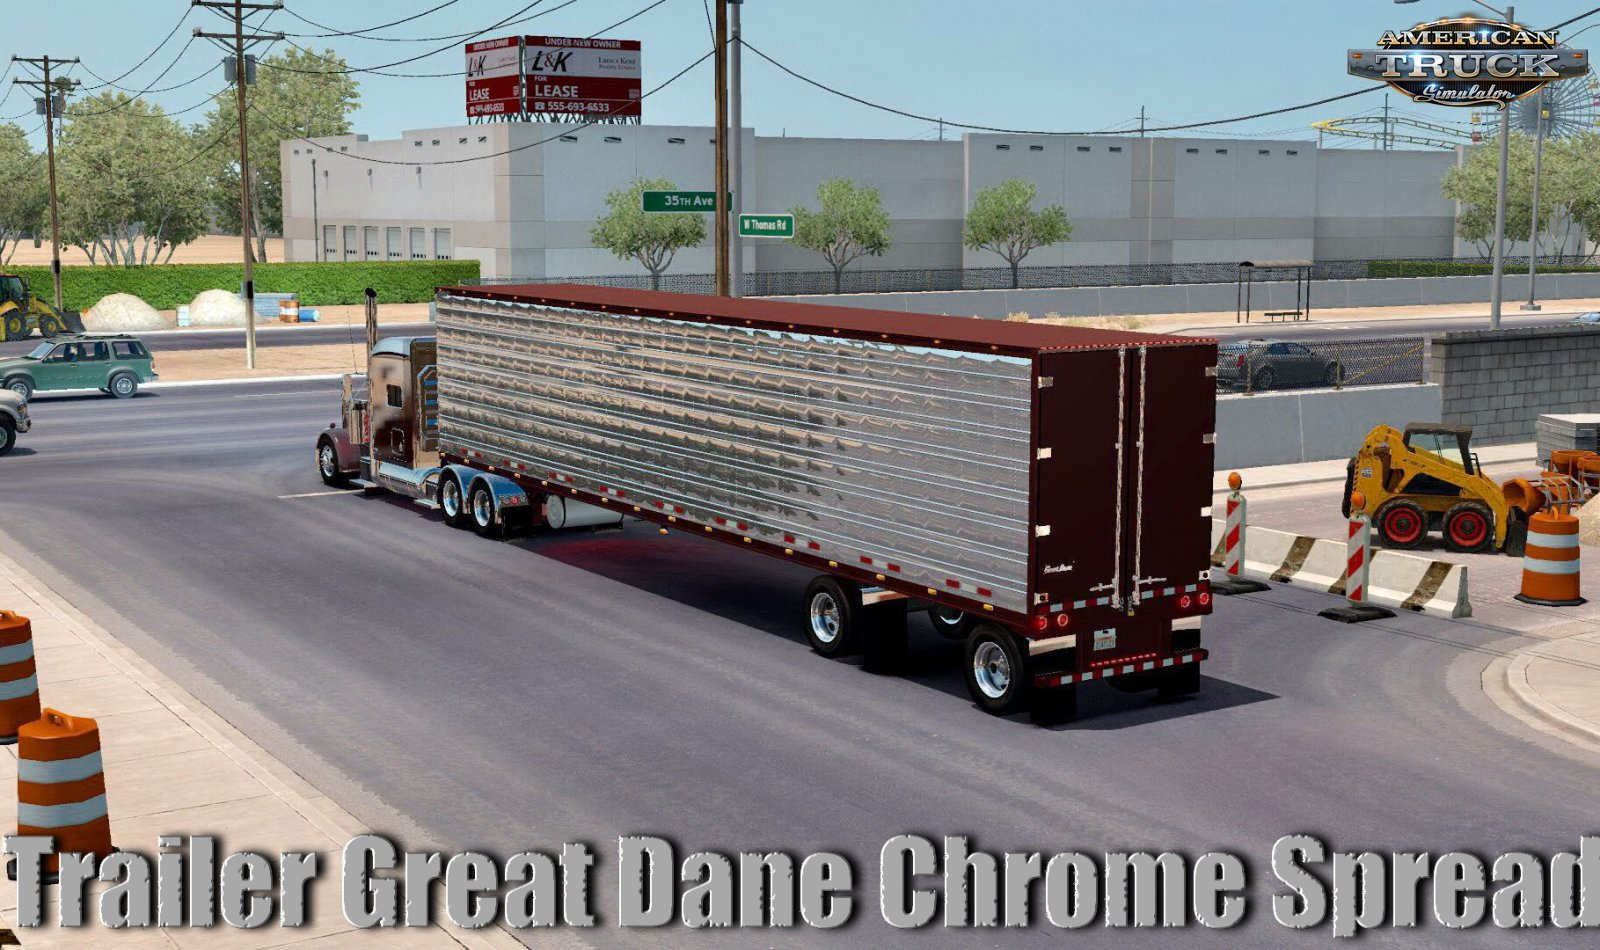 Trailer Great Dane Chrome Spread v1.0 (1.35.x)